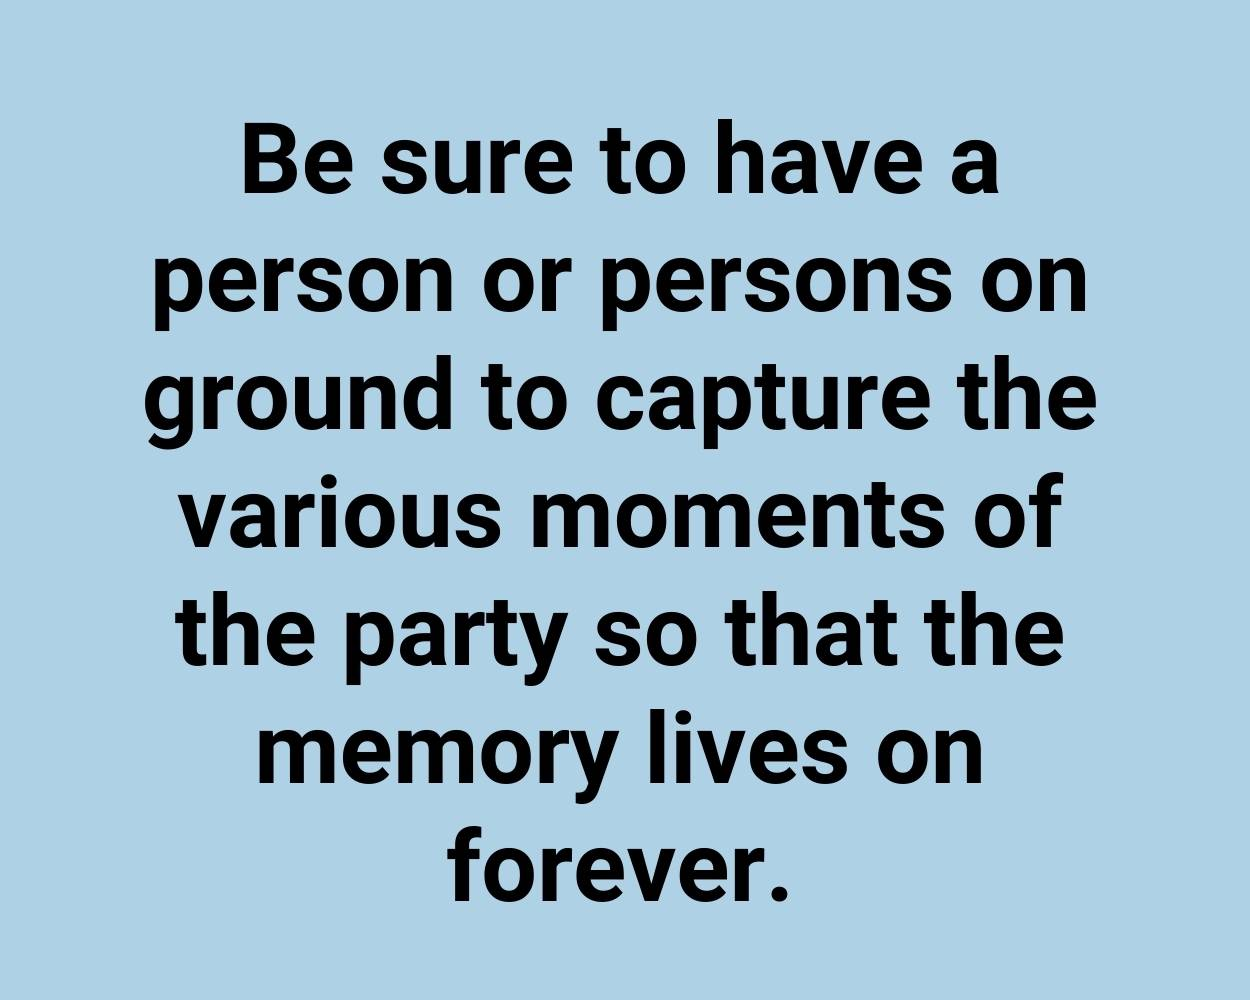 Be sure to have a person or persons on ground to capture the various moments of the party so that the memory lives on forever.